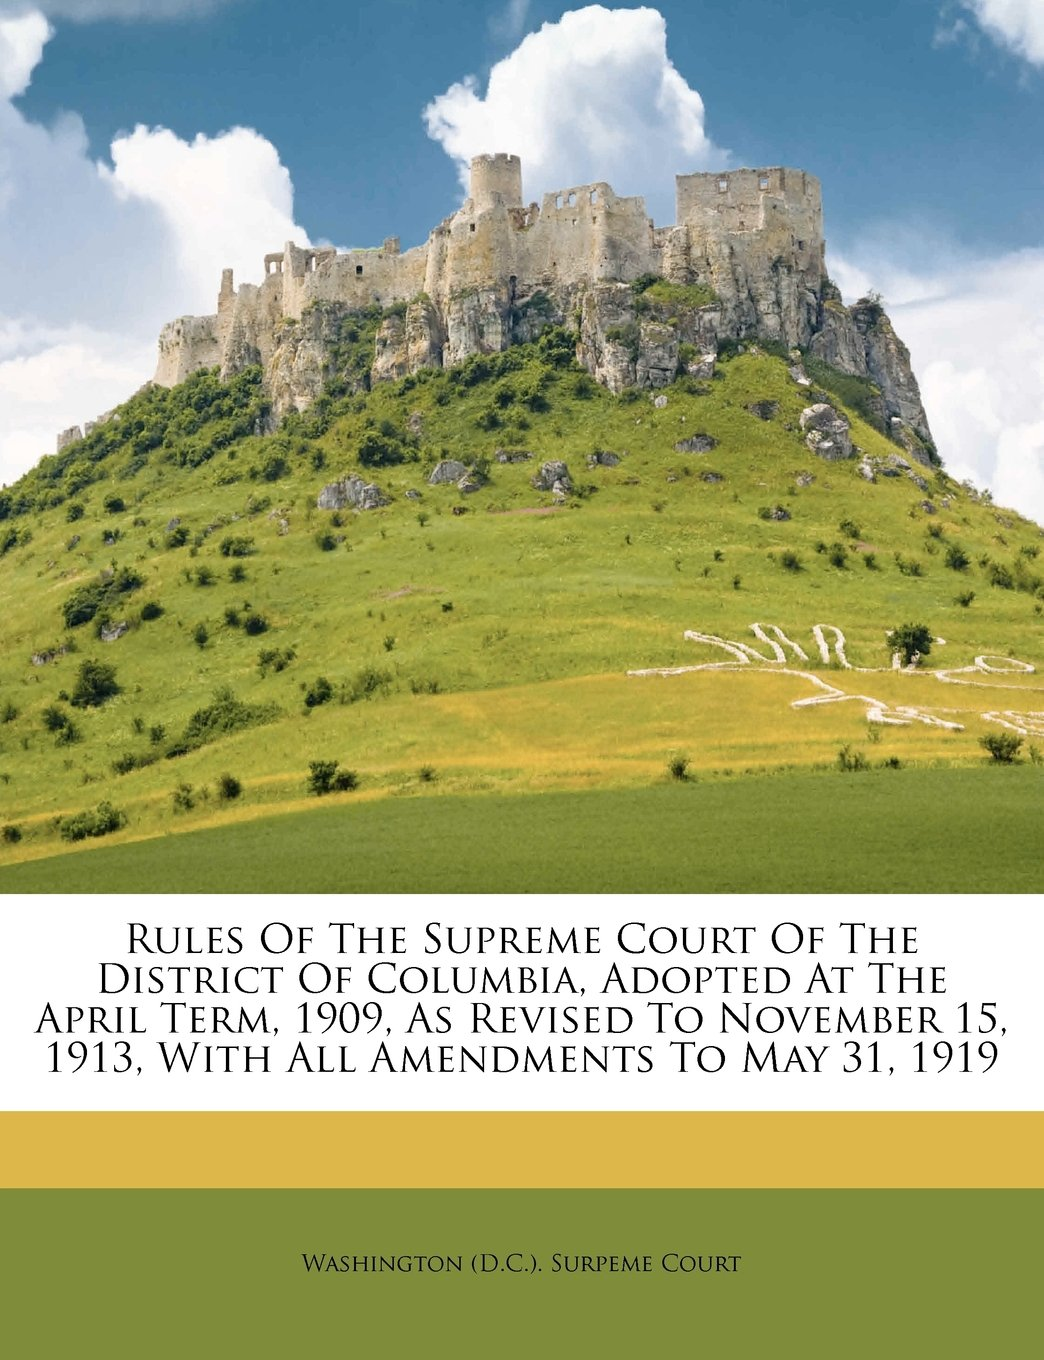 Rules Of The Supreme Court Of The District Of Columbia, Adopted At The April Term, 1909, As Revised To November 15, 1913, With All Amendments To May 31, 1919 ebook